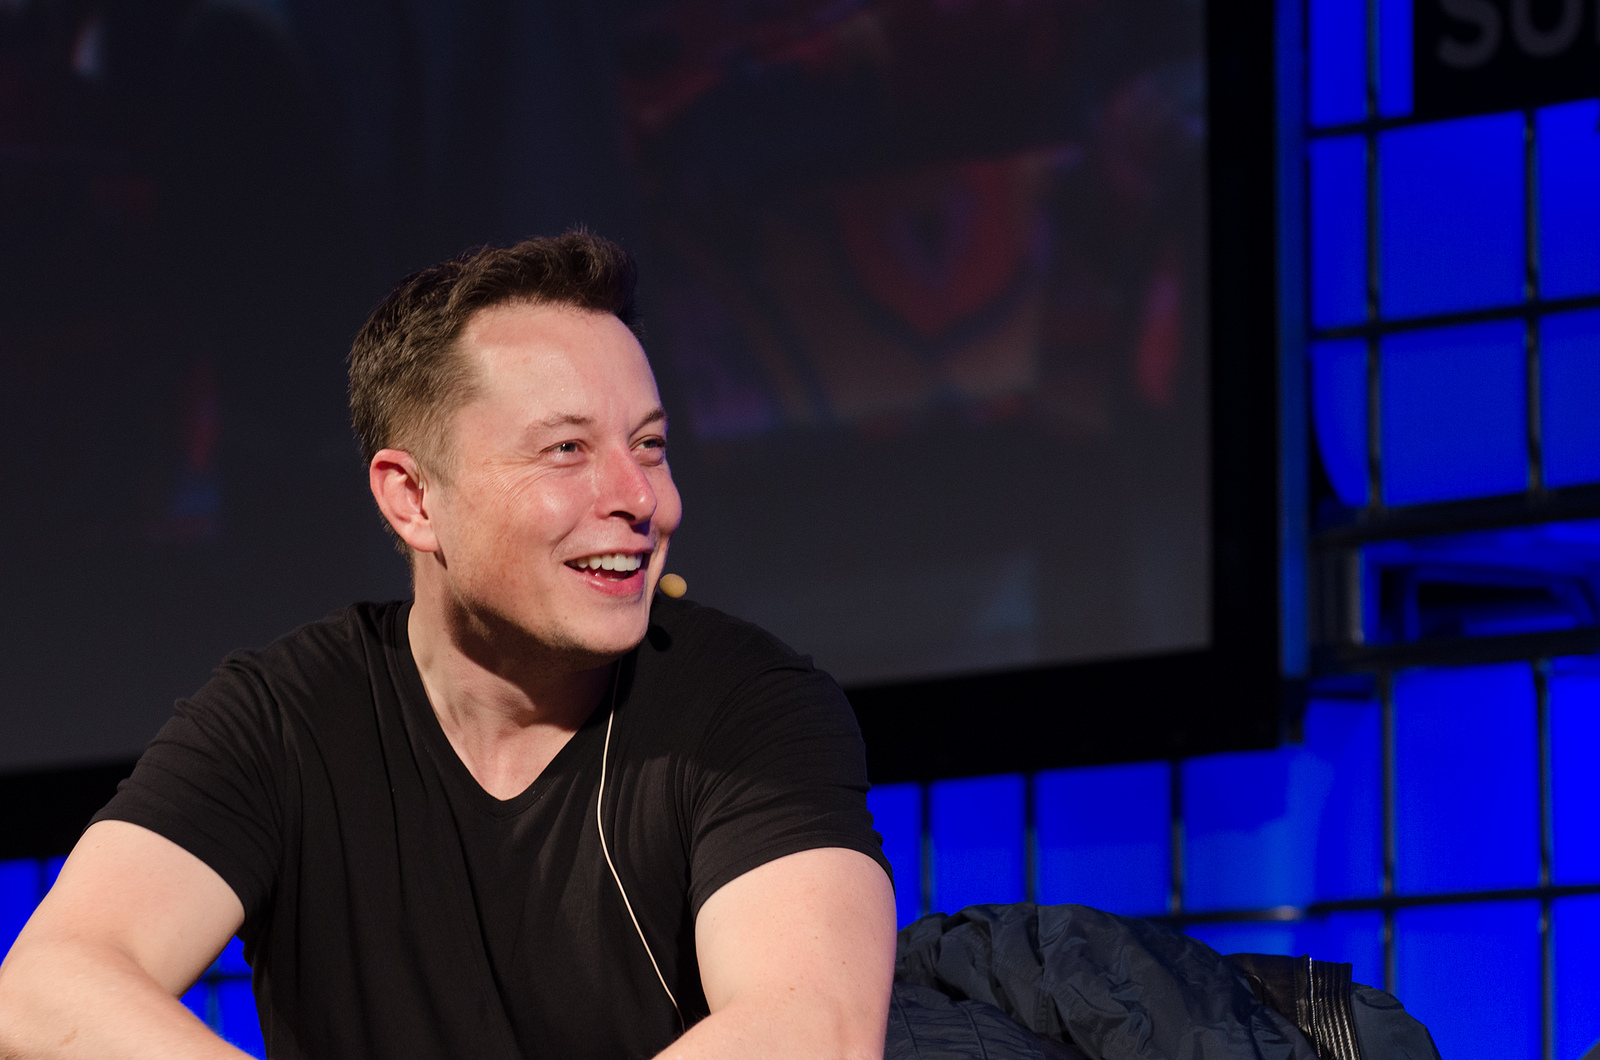 The Evolution of Elon Musk: The Good, The Bad, and the Ugly